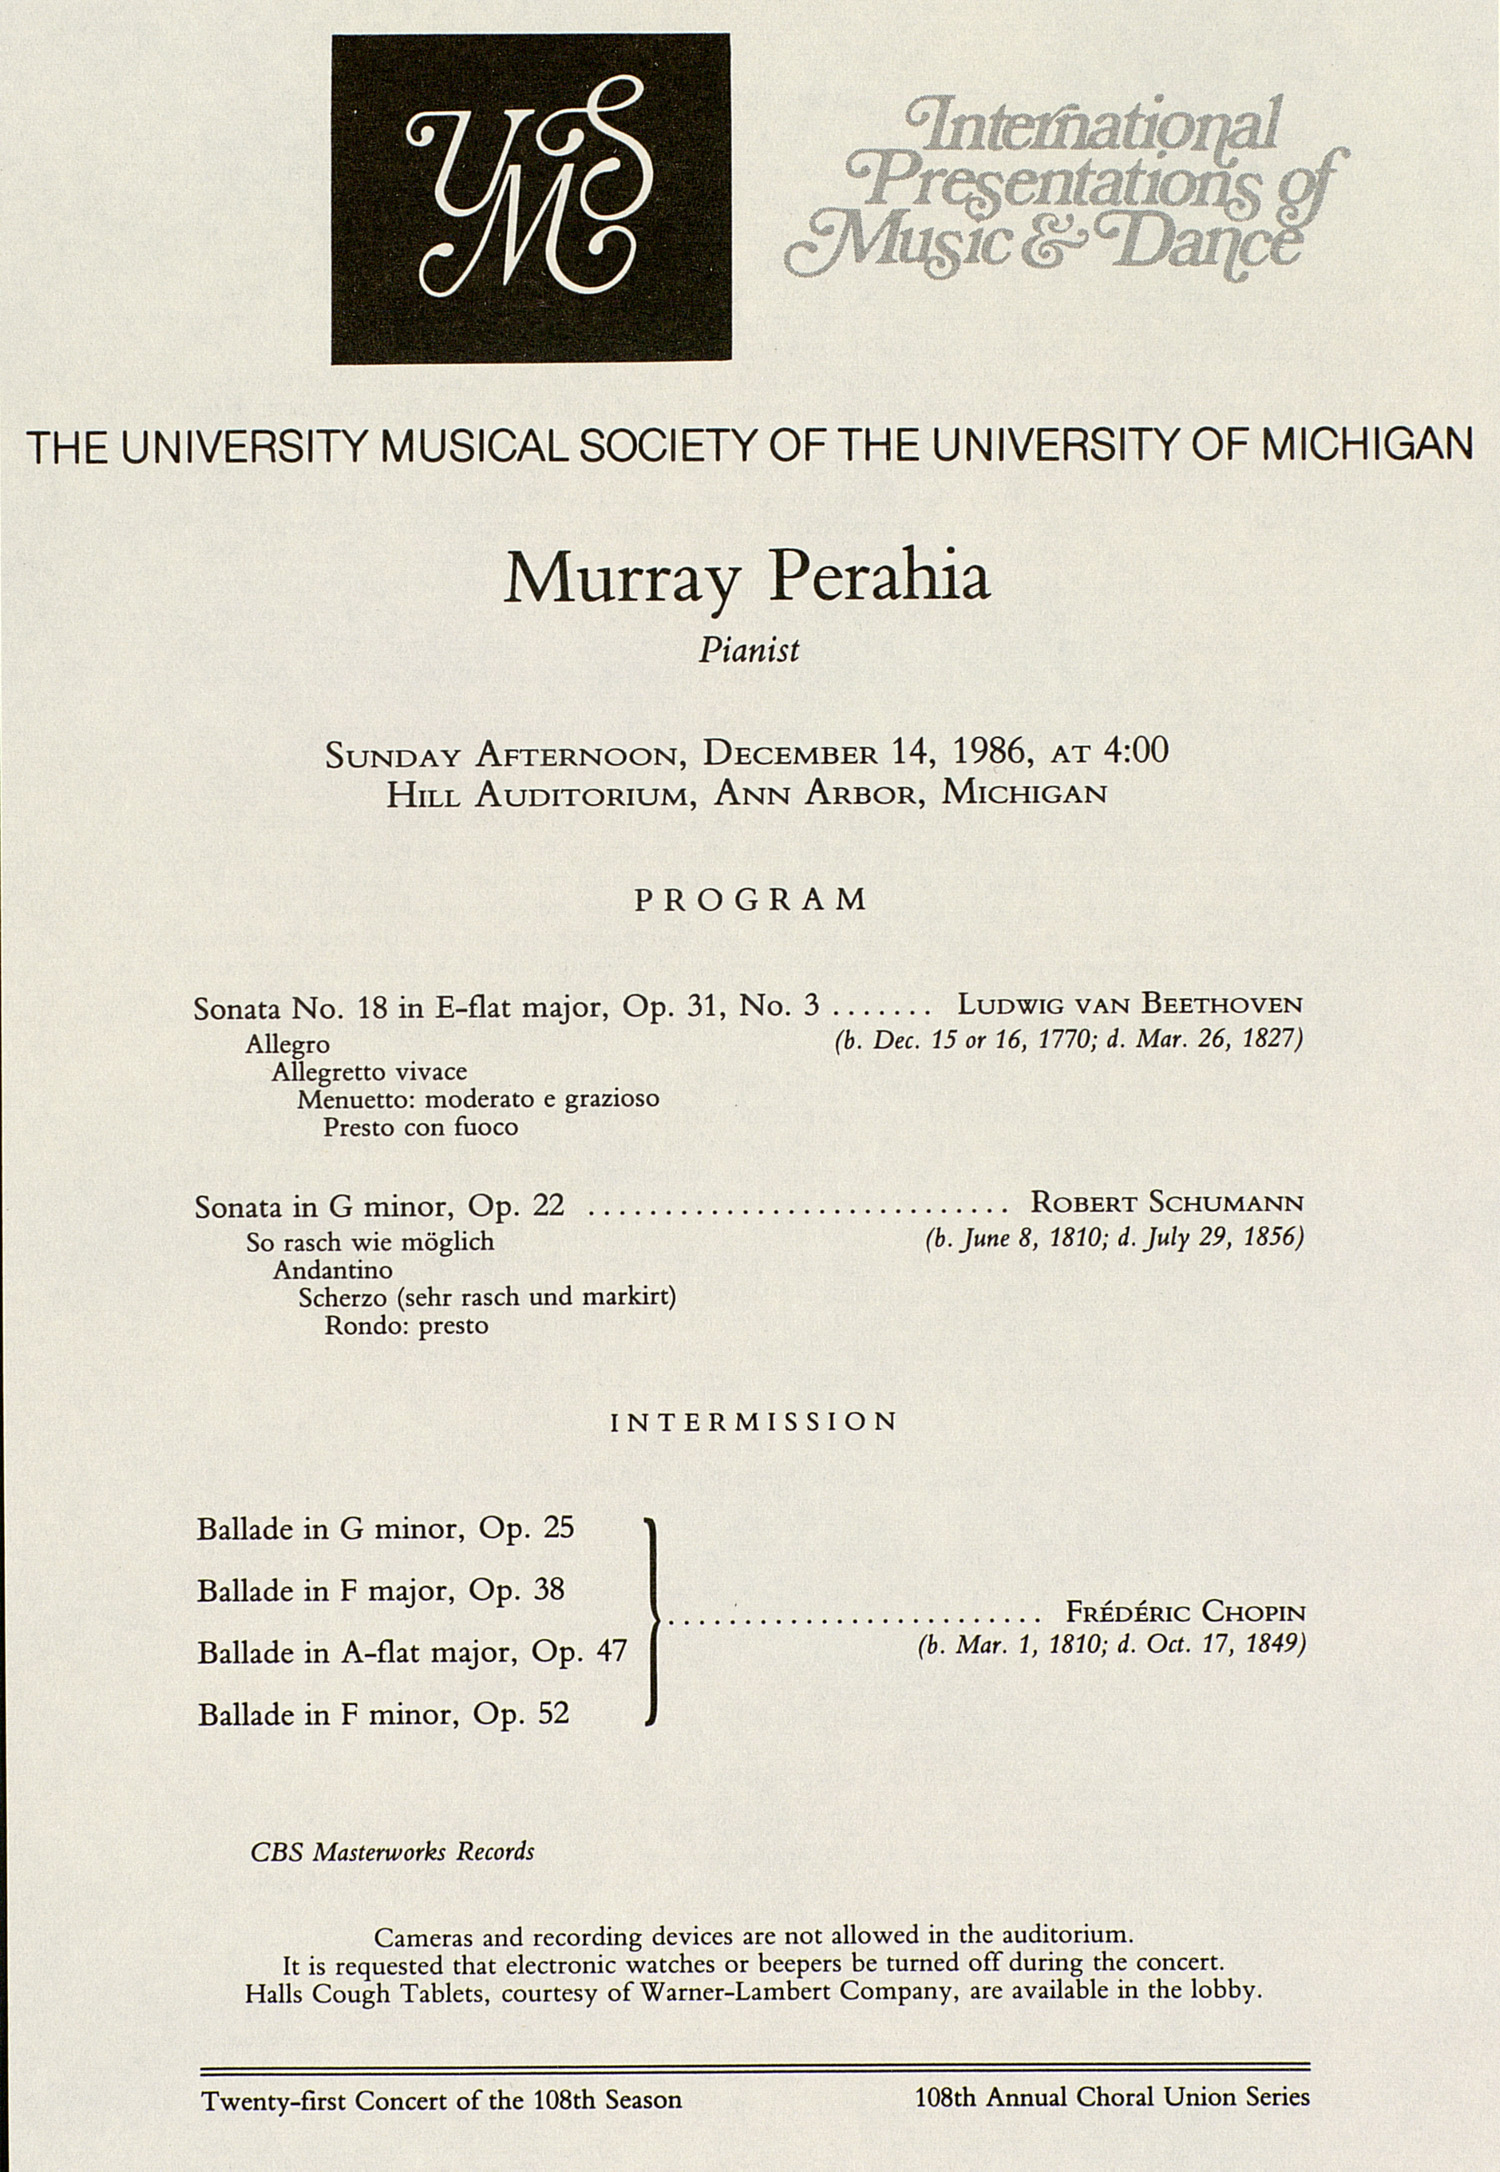 UMS Concert Program, December 14, 1986: International Presentations Of Music & Dance --  image